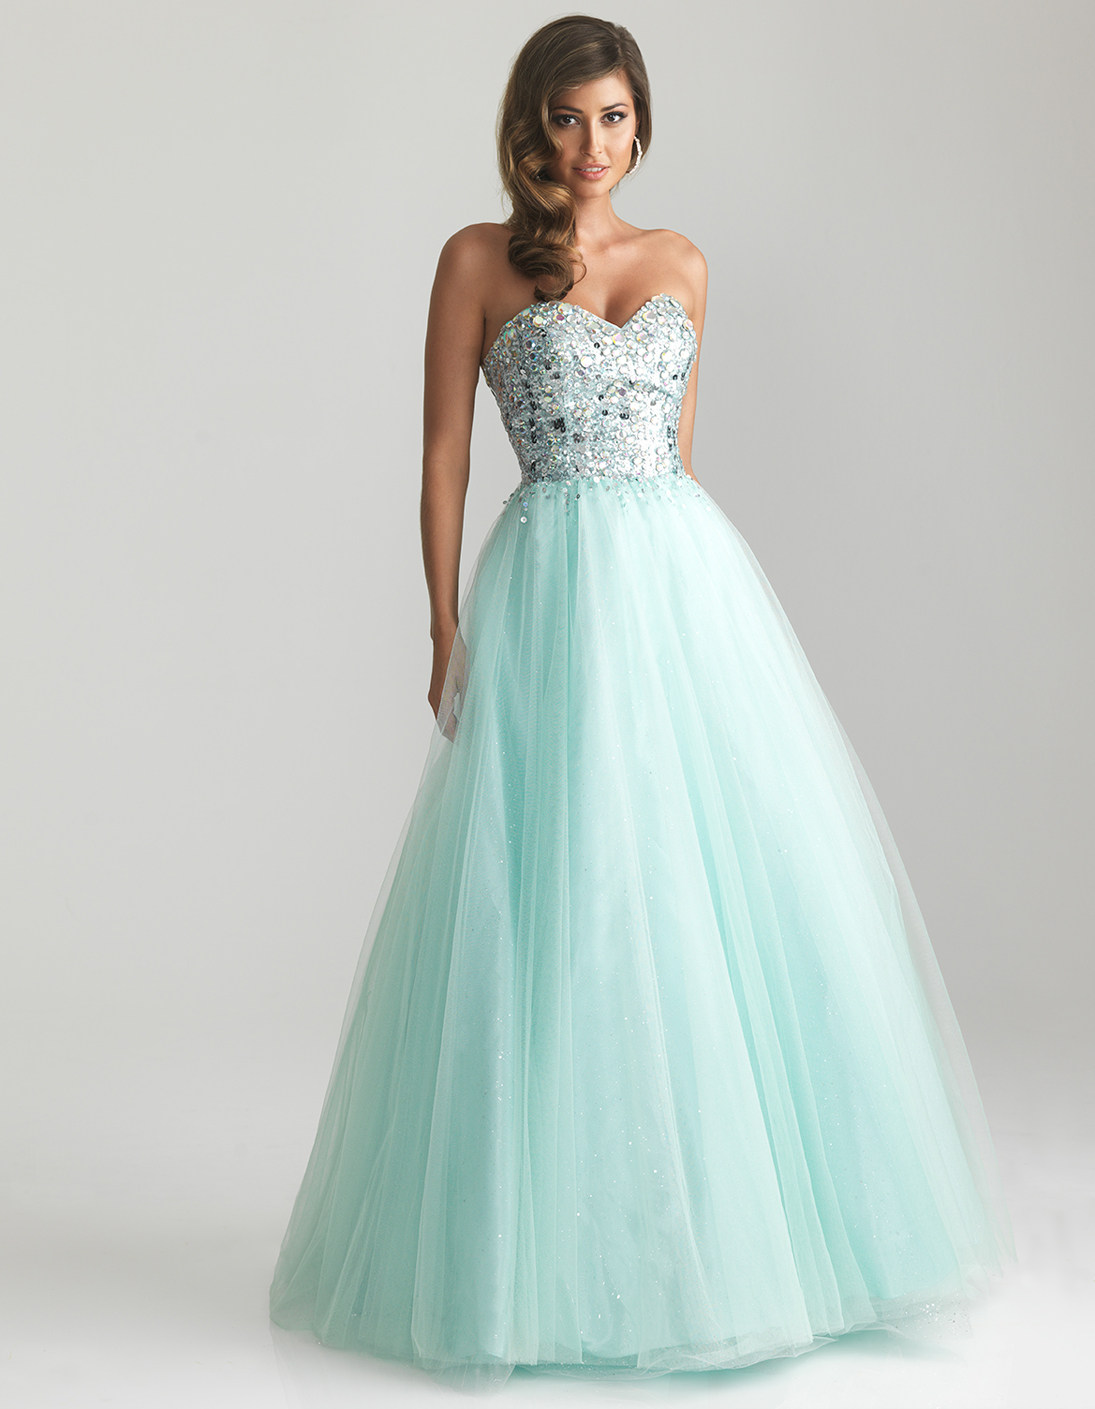 Beaded Tulle Sweetheart Prom Gown - Unique Vintage - Prom dresses ...